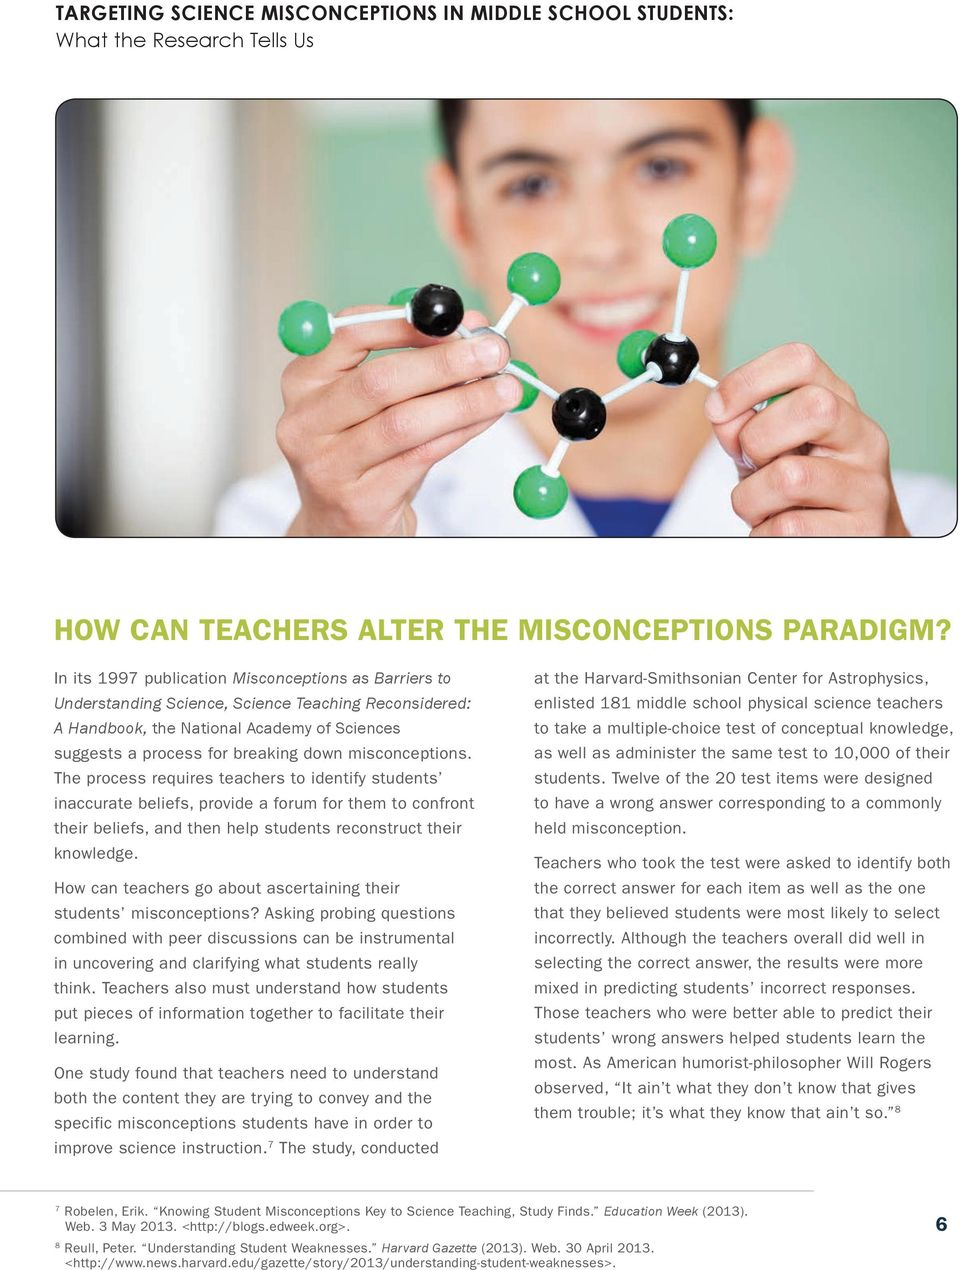 misconceptions. The process requires teachers to identify students inaccurate beliefs, provide a forum for them to confront their beliefs, and then help students reconstruct their knowledge.